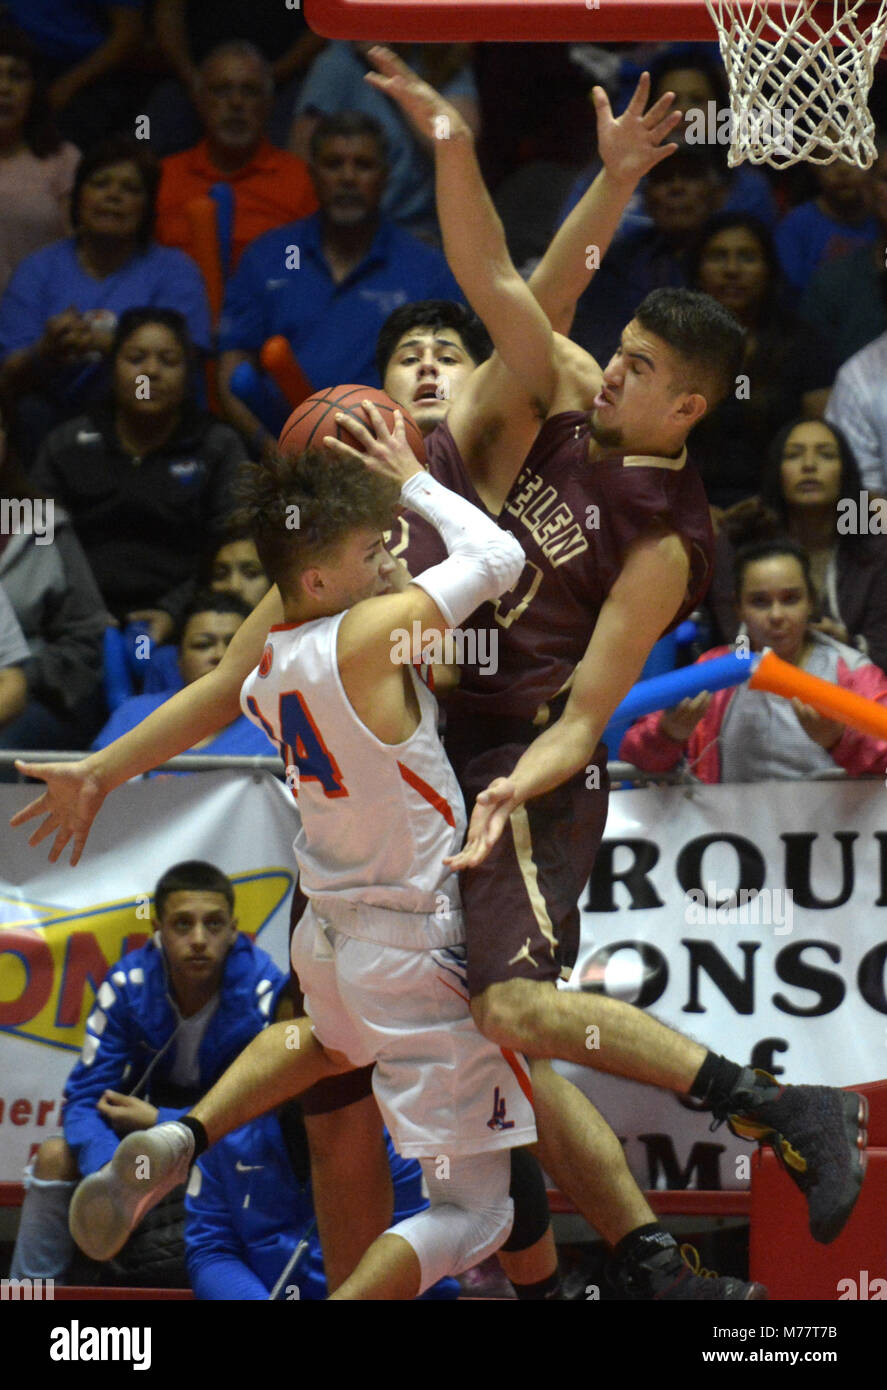 U.S. 8th Mar, 2018. SPORTS -- Belens' Alexis Aguilar, center, and Matthew Padilla, right, blocks Los Lunas' Joe Dominguez, 14, during the 5A State semifinal boys basketball game in the Pit on Thursday, March 8, 2018. Credit: Greg Sorber/Albuquerque Journal/ZUMA Wire/Alamy Live News Stock Photo